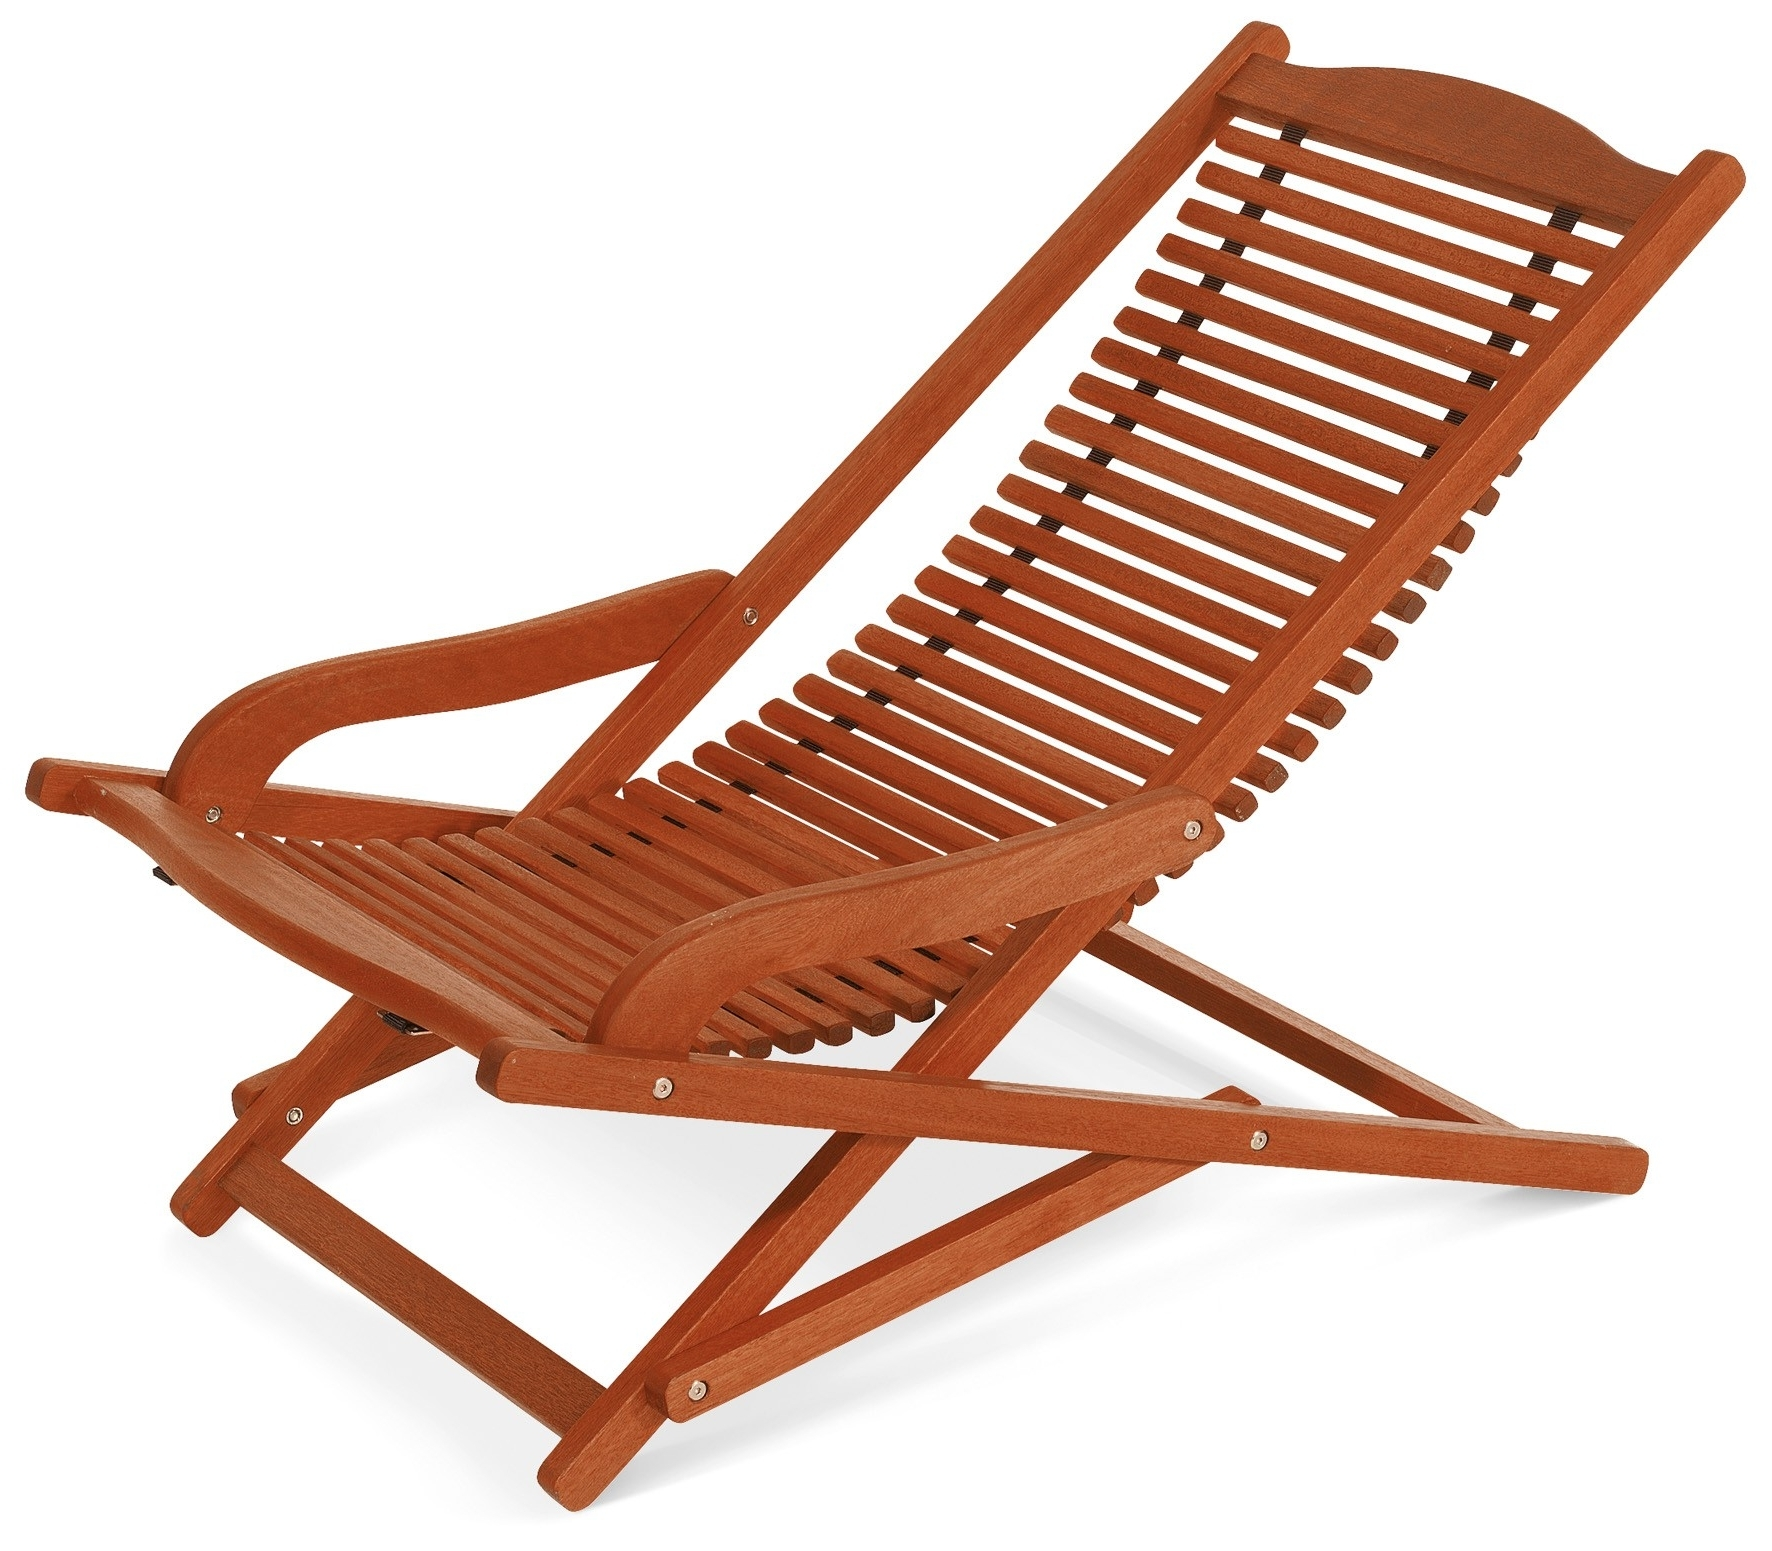 Outdoor : Cheap Lawn Chairs Plastic Lounge Chairs Indoor Wooden Throughout Recent Jelly Chaise Lounge Chairs (View 14 of 15)